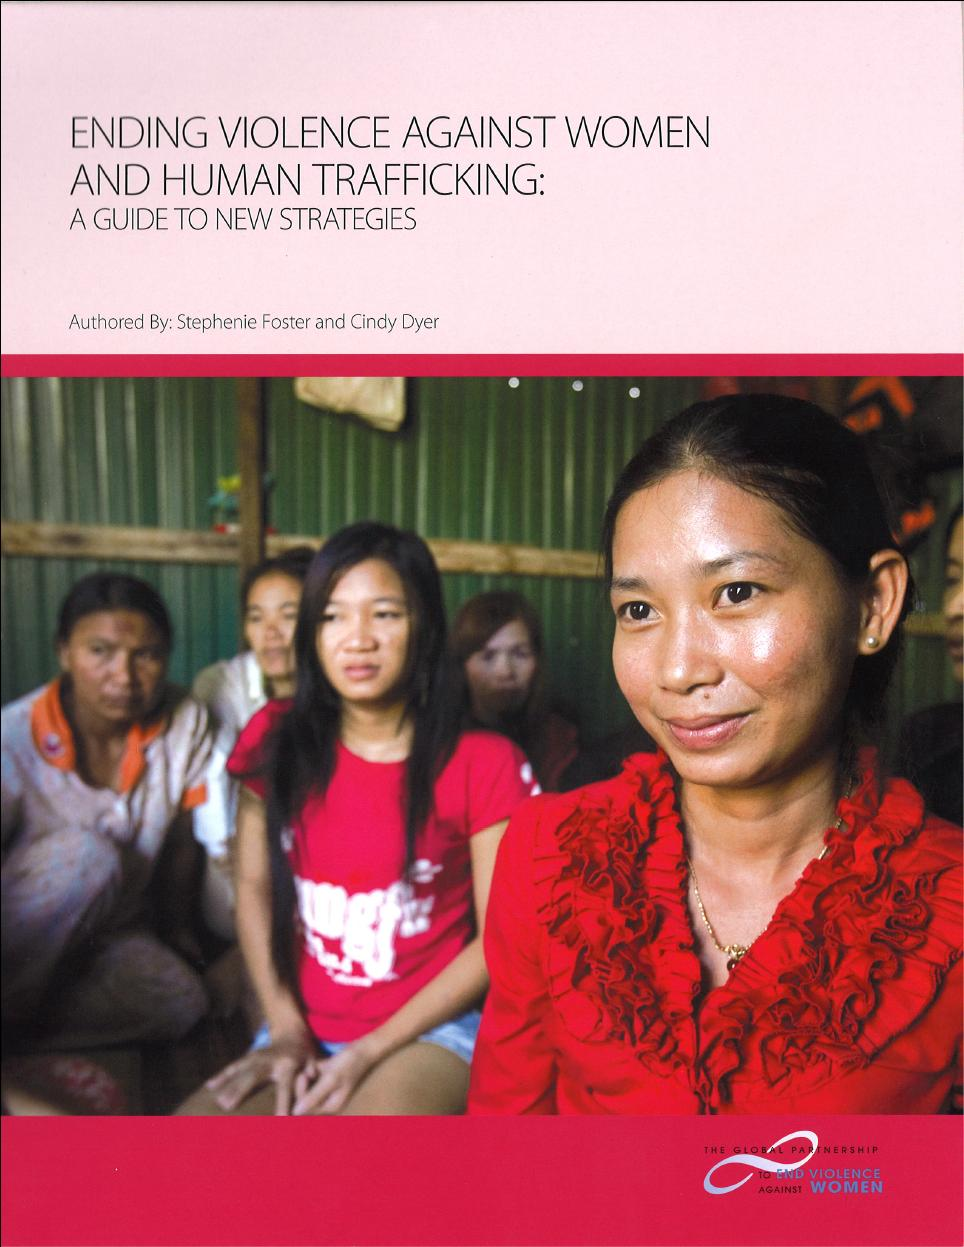 Ending Violence Against Women and Human Trafficking: A Guide to New Strategies